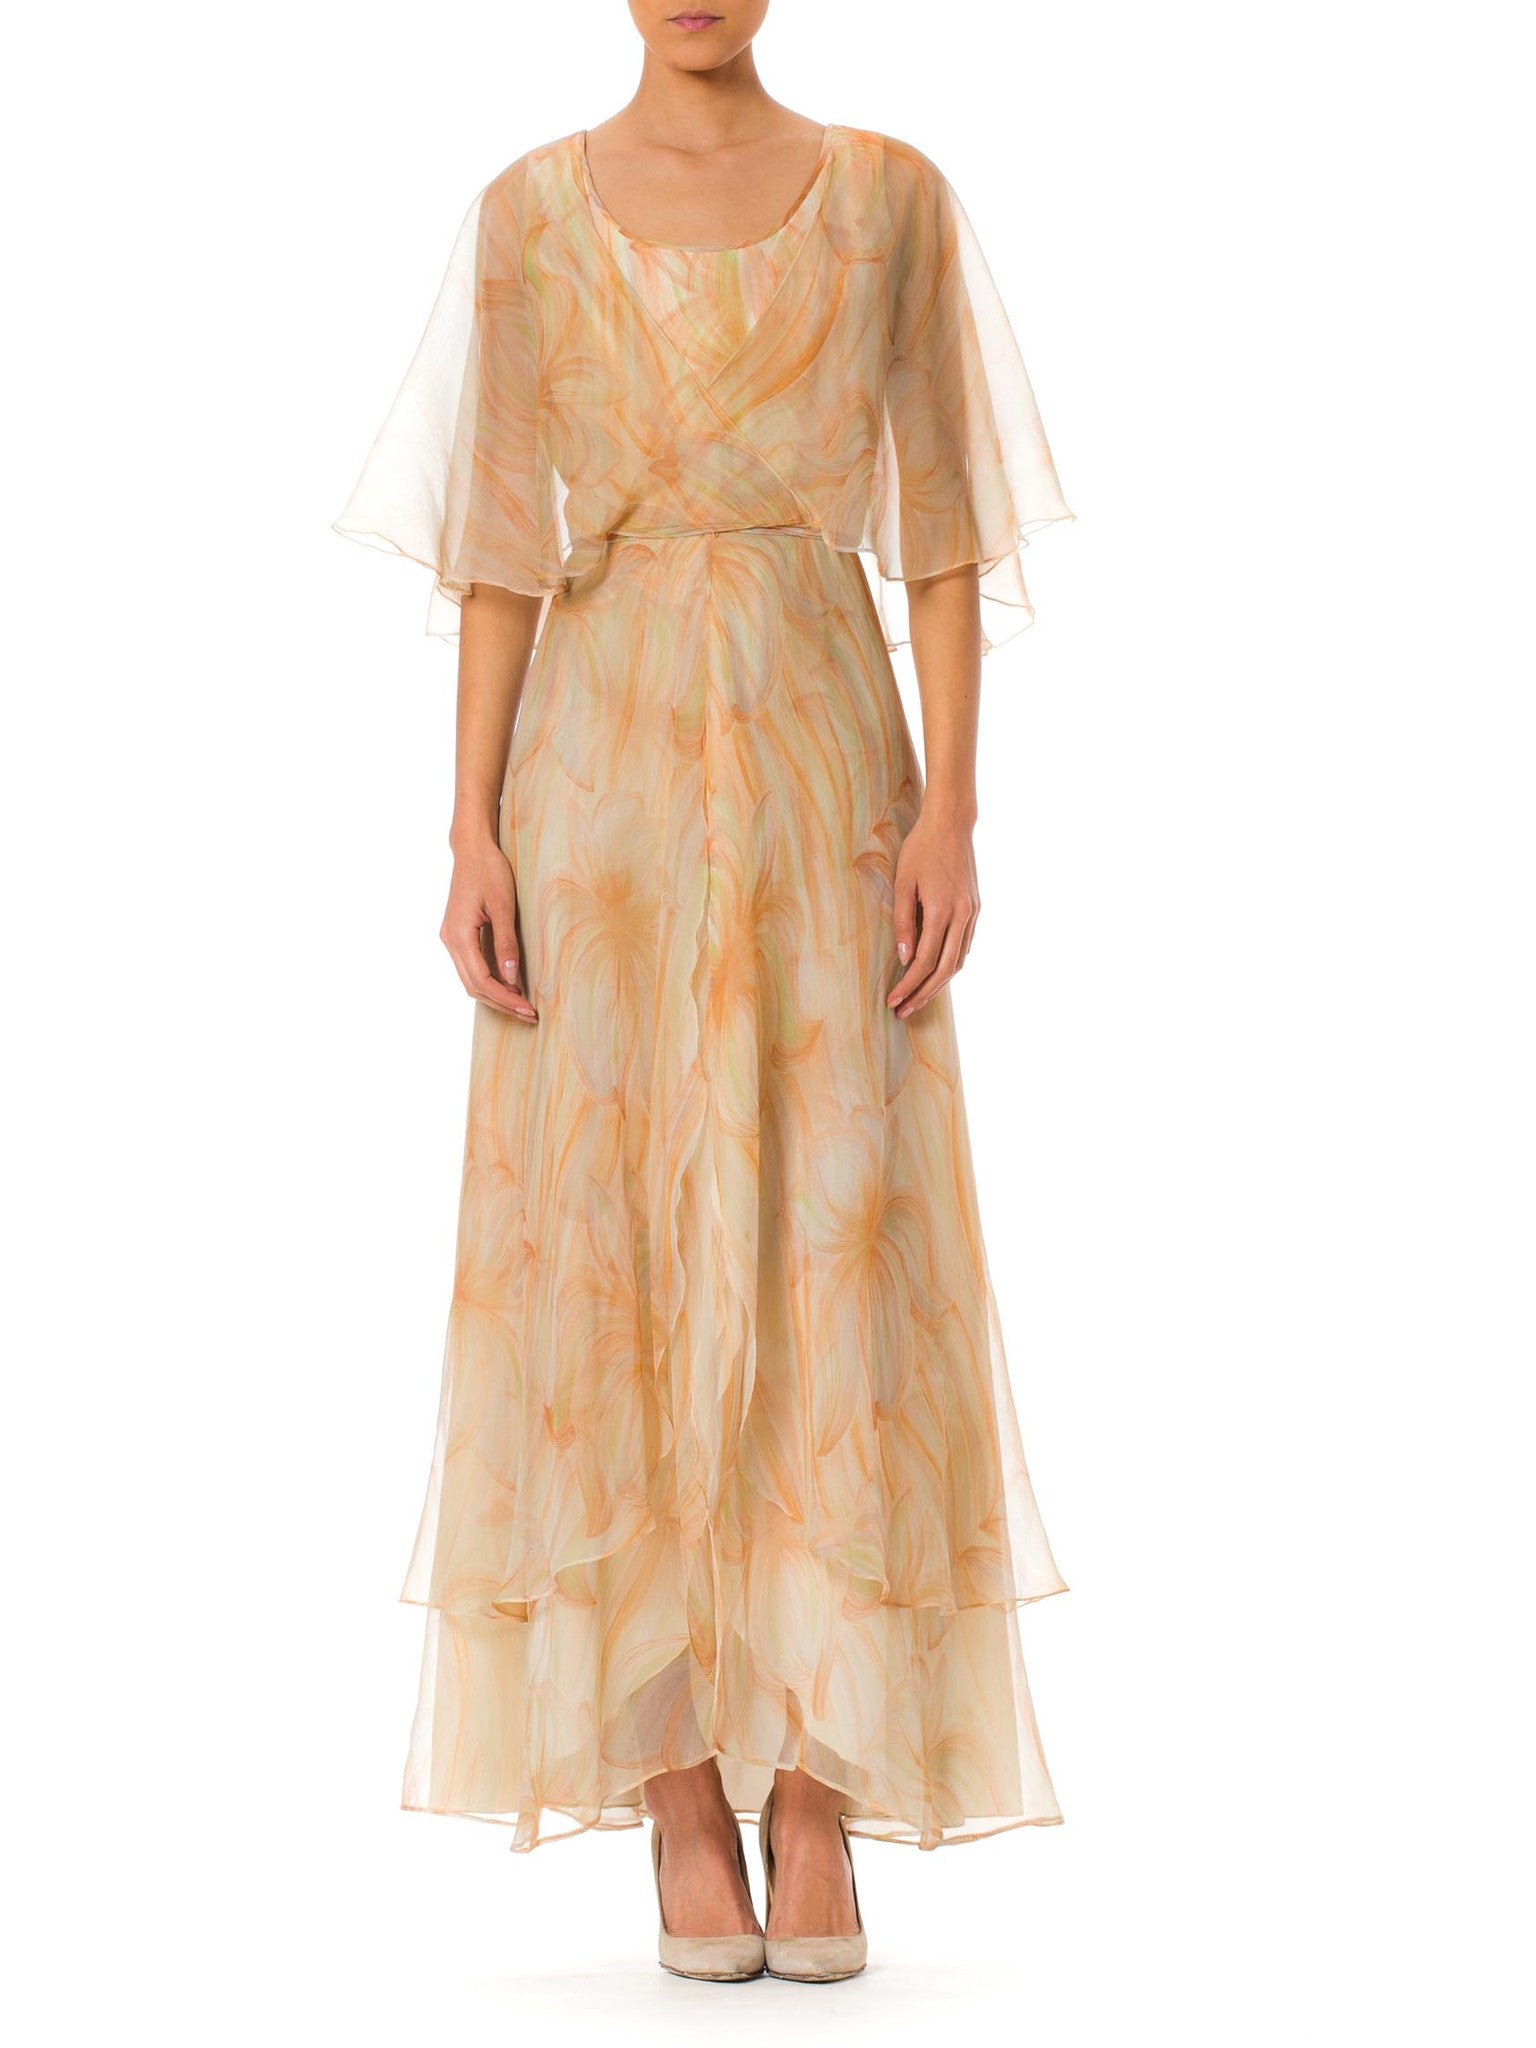 1970S MR BLACKWELL CUSTOM Polyester Chiffon Pastel Brushstroke Print Tiered Gown With Cape Sleeves